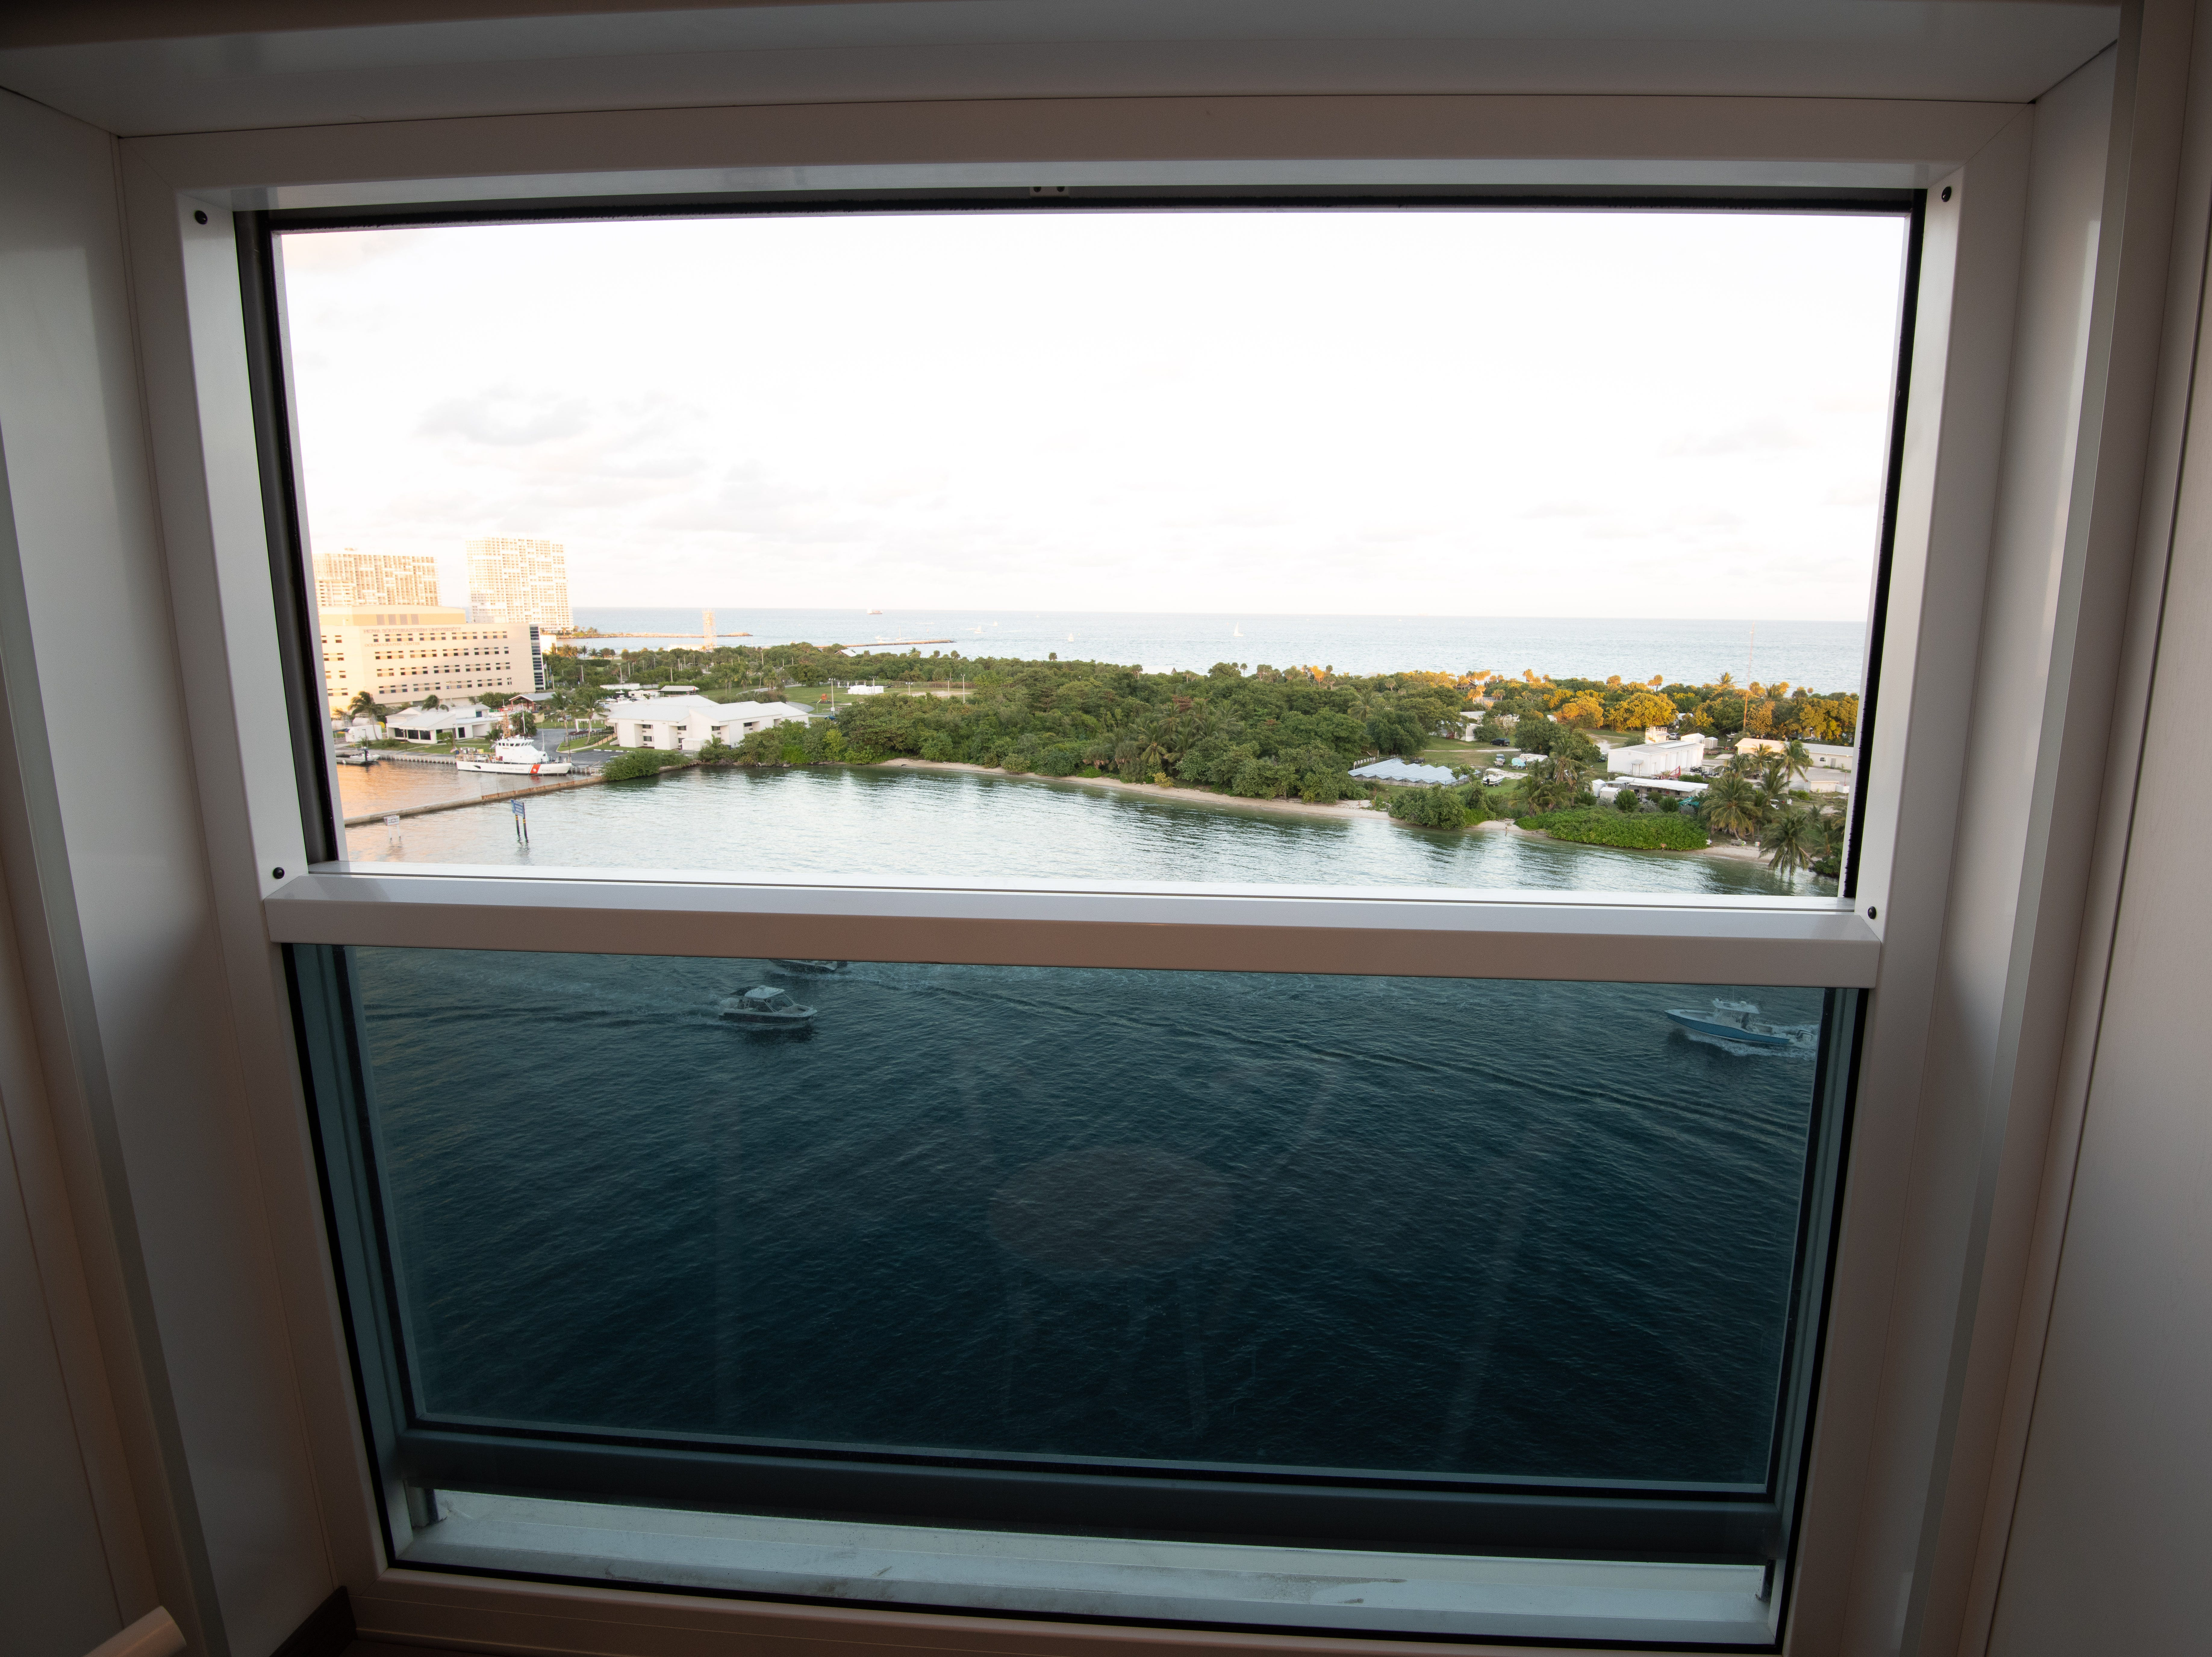 The top half of the glass wall at the end of Edge Stateroom with Infinite Veranda cabins can be lowered to create a balcony feel. The same technology has been used by several river cruise lines including Scenic Cruises.